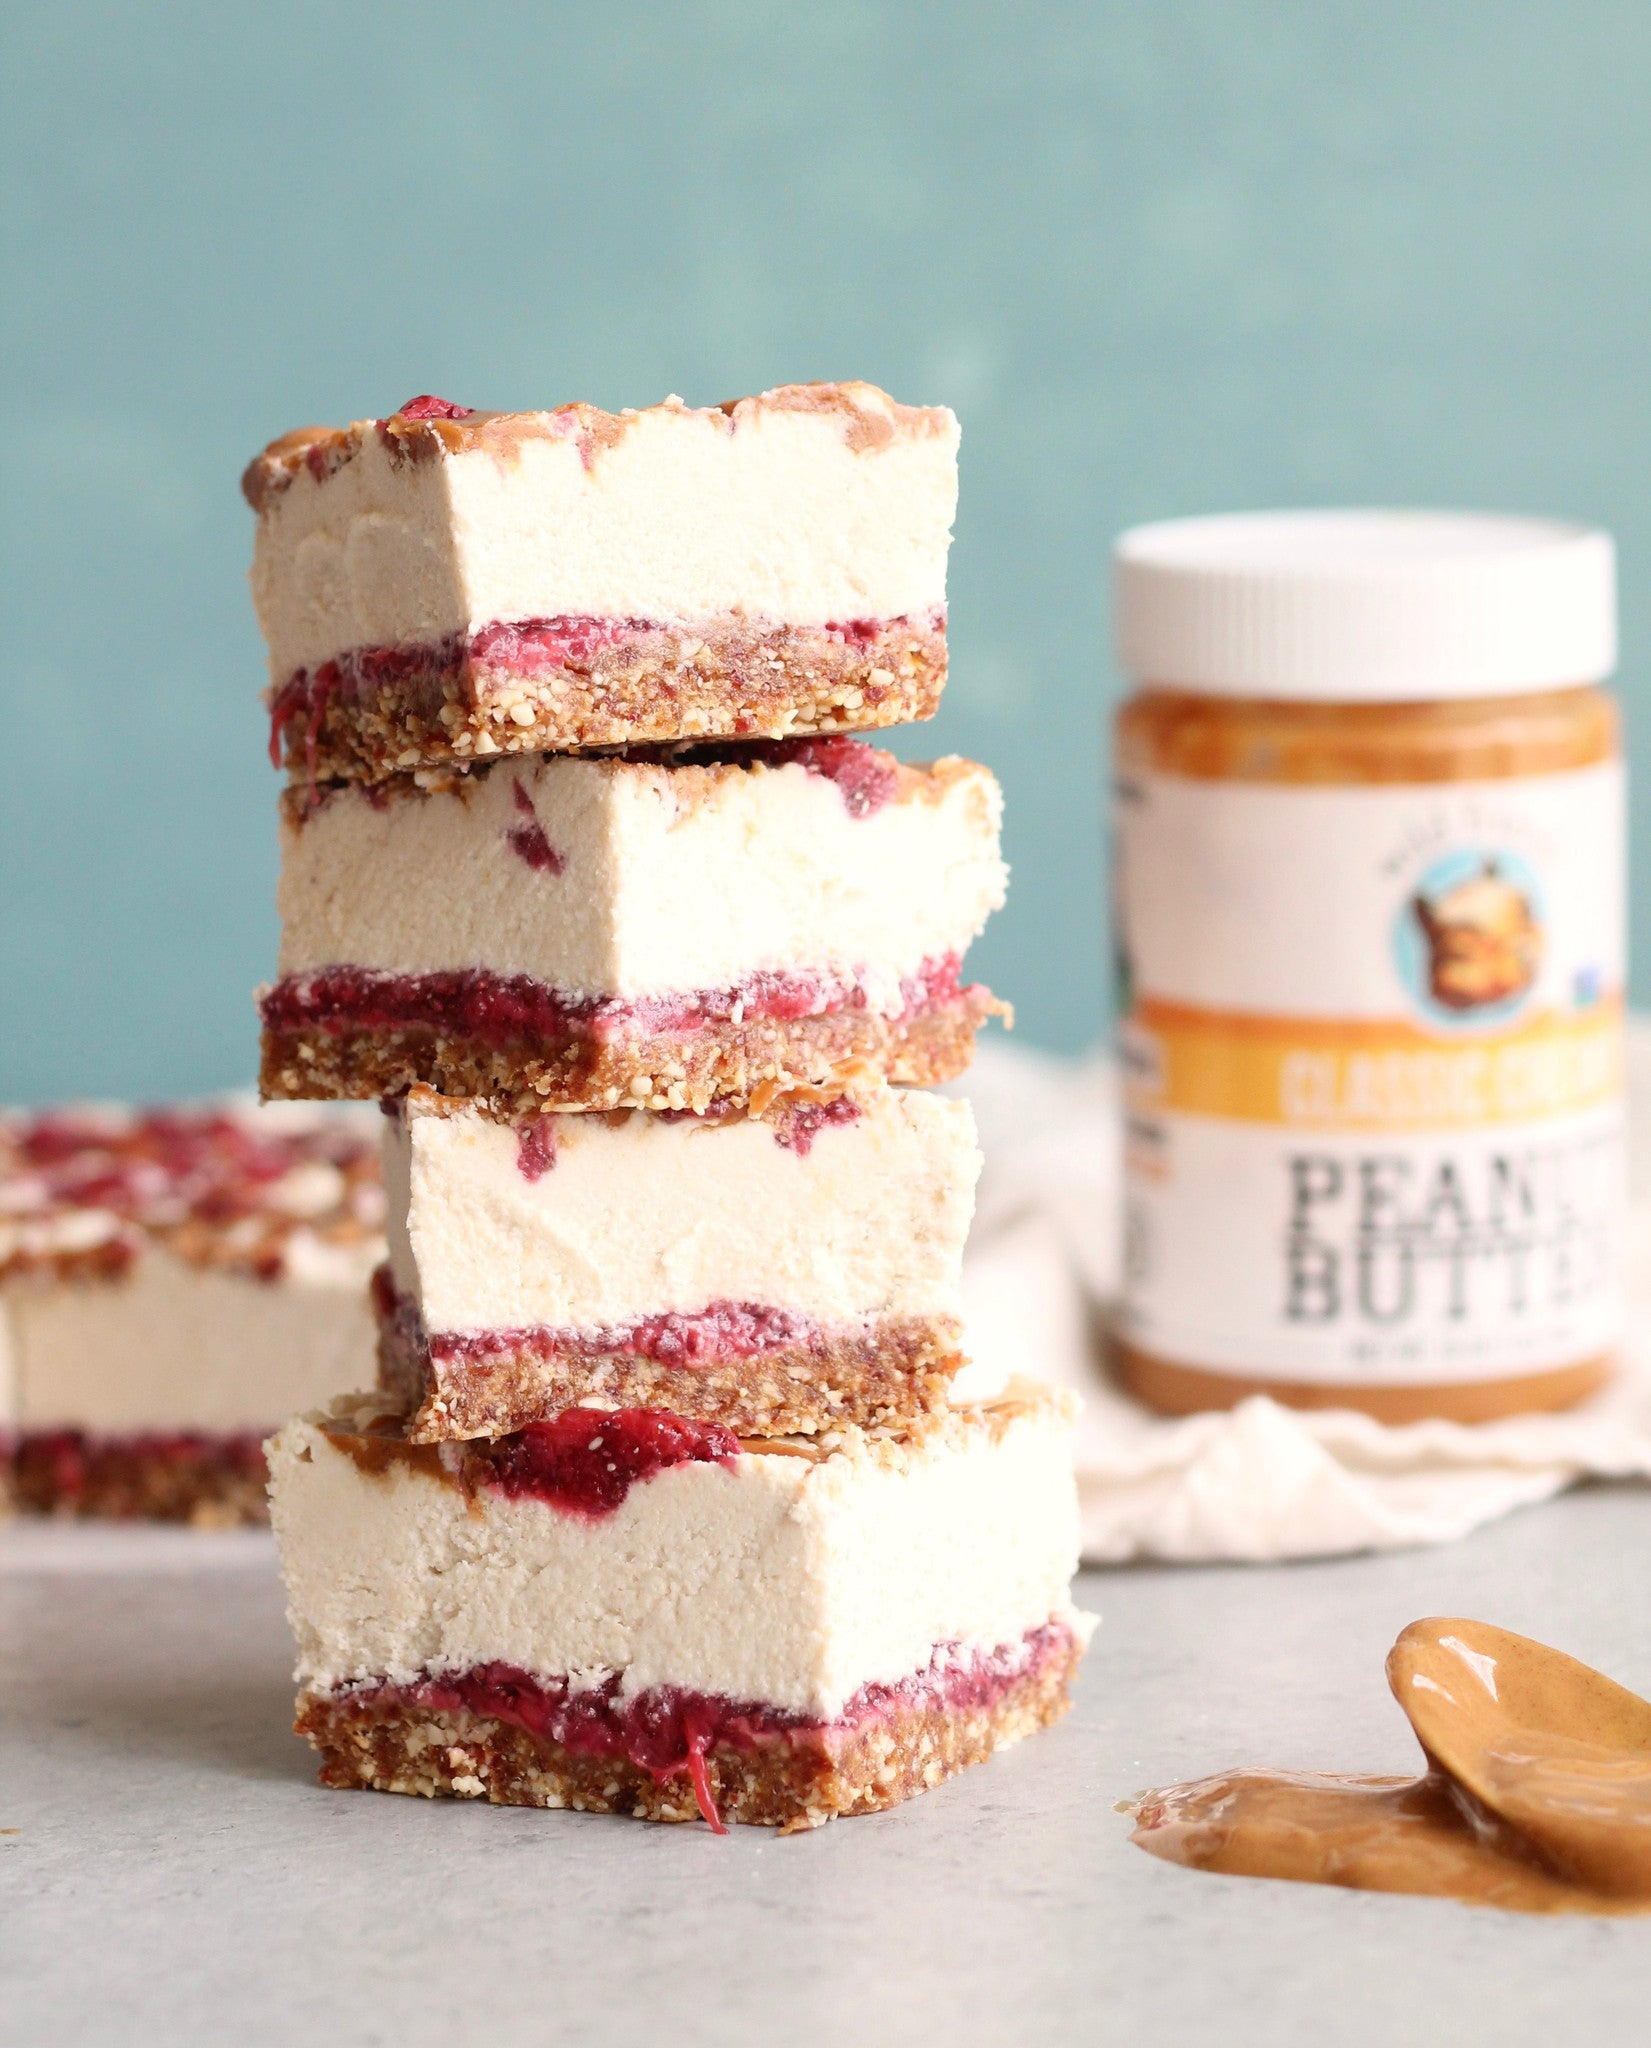 Peanut Butter & Strawberry Chia Jam Cashew Cheesecake Bars